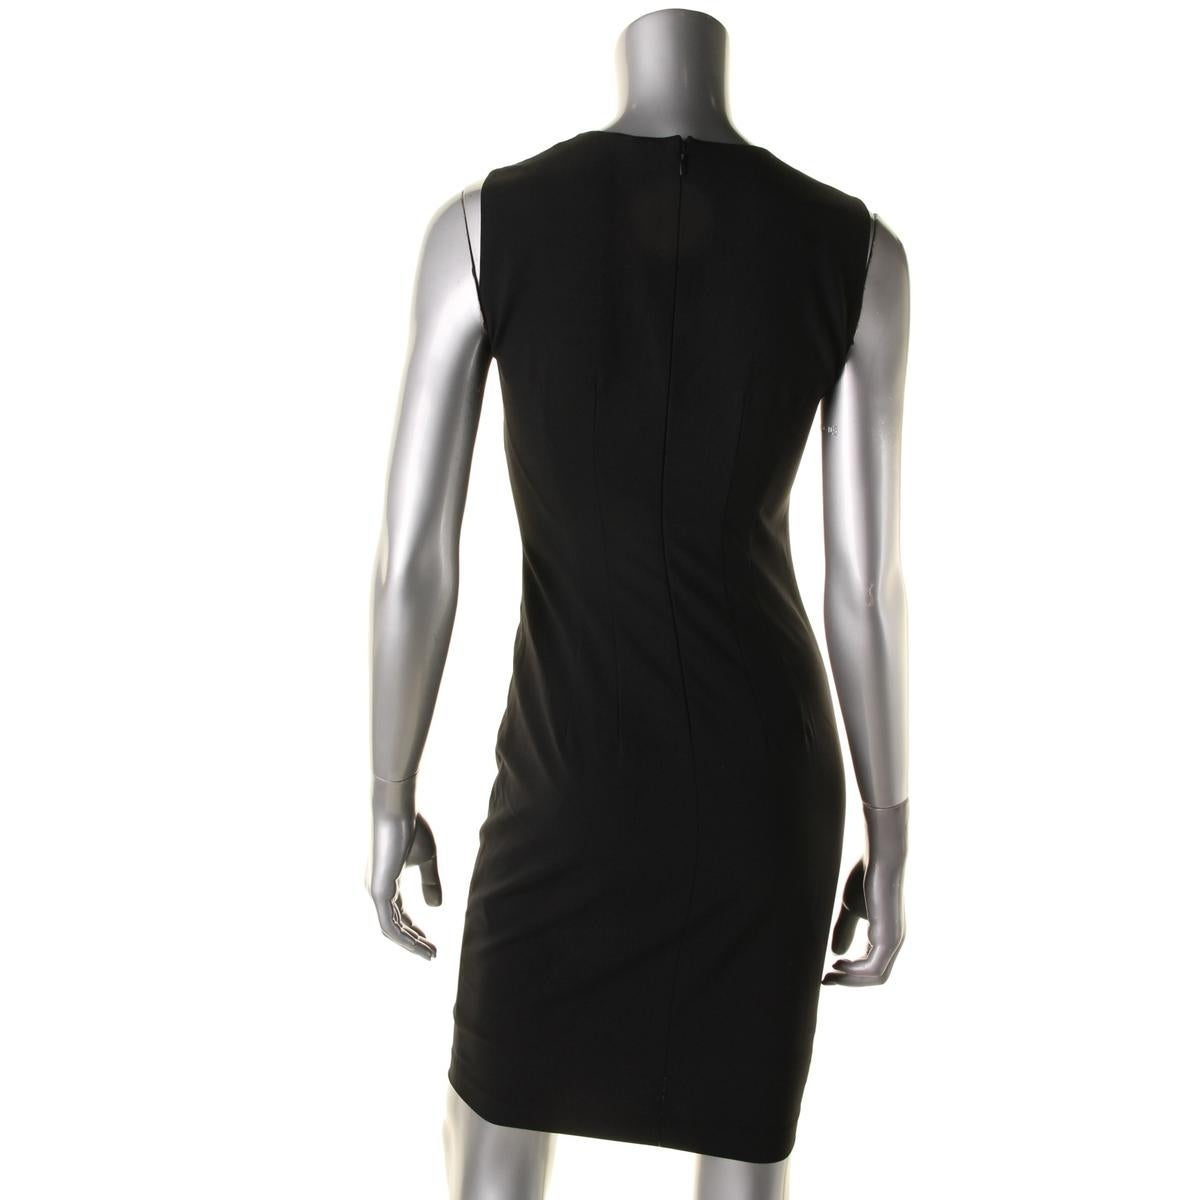 fa85f10f5e21 Shop Elie Tahari Womens Gwenyth Cocktail Dress Wool Sleeveless - Free  Shipping Today - Overstock - 17671698